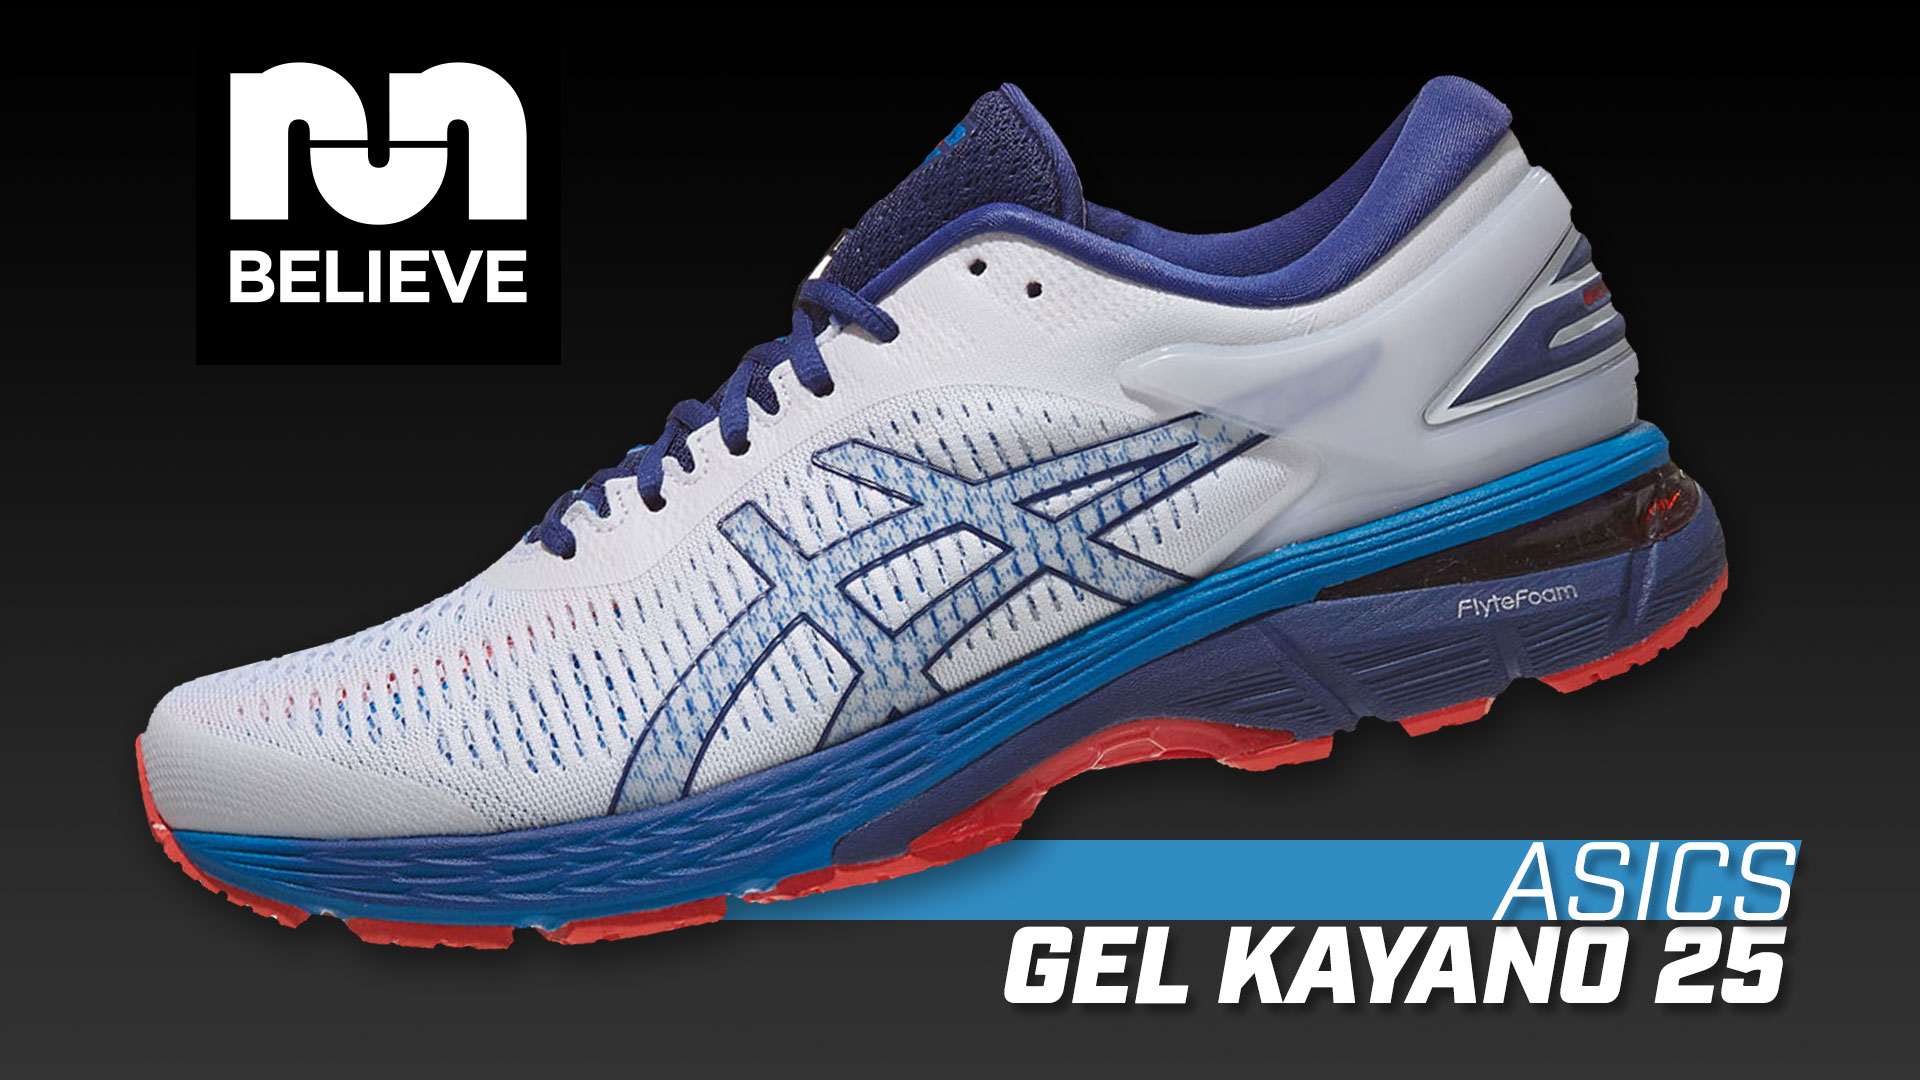 Asics Gel Kayano 25 Video Performance Review » Believe in